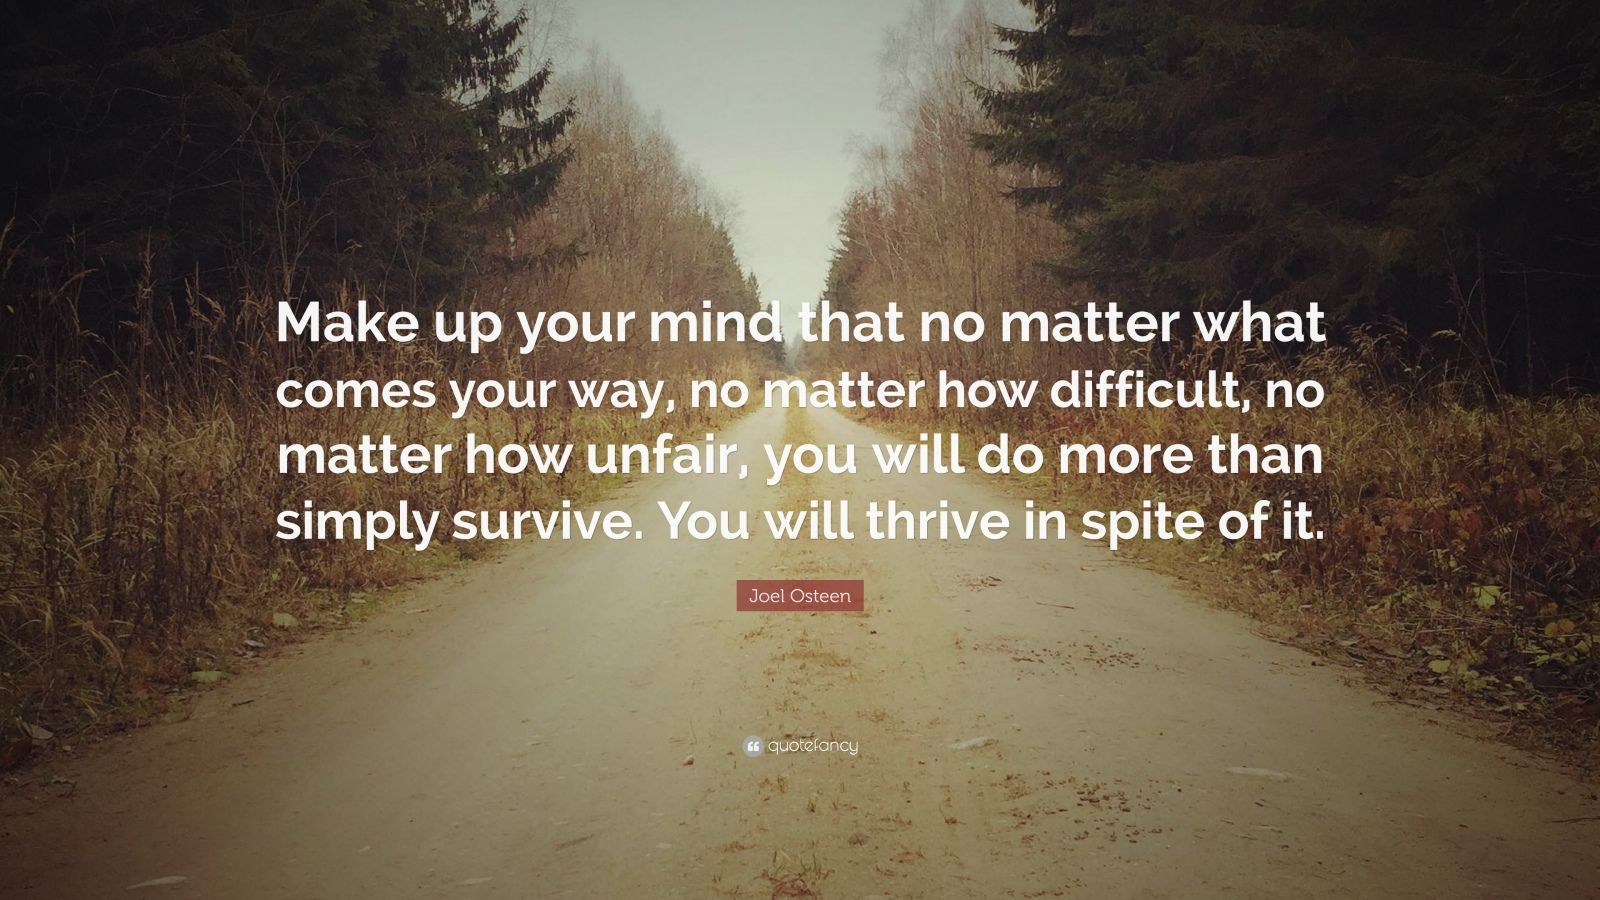 """Joel Osteen Quote: """"Make up your mind that no matter what comes your way, no matter how difficult, no matter how unfair, you will do more than simply survive. You will thrive in spite of it."""""""